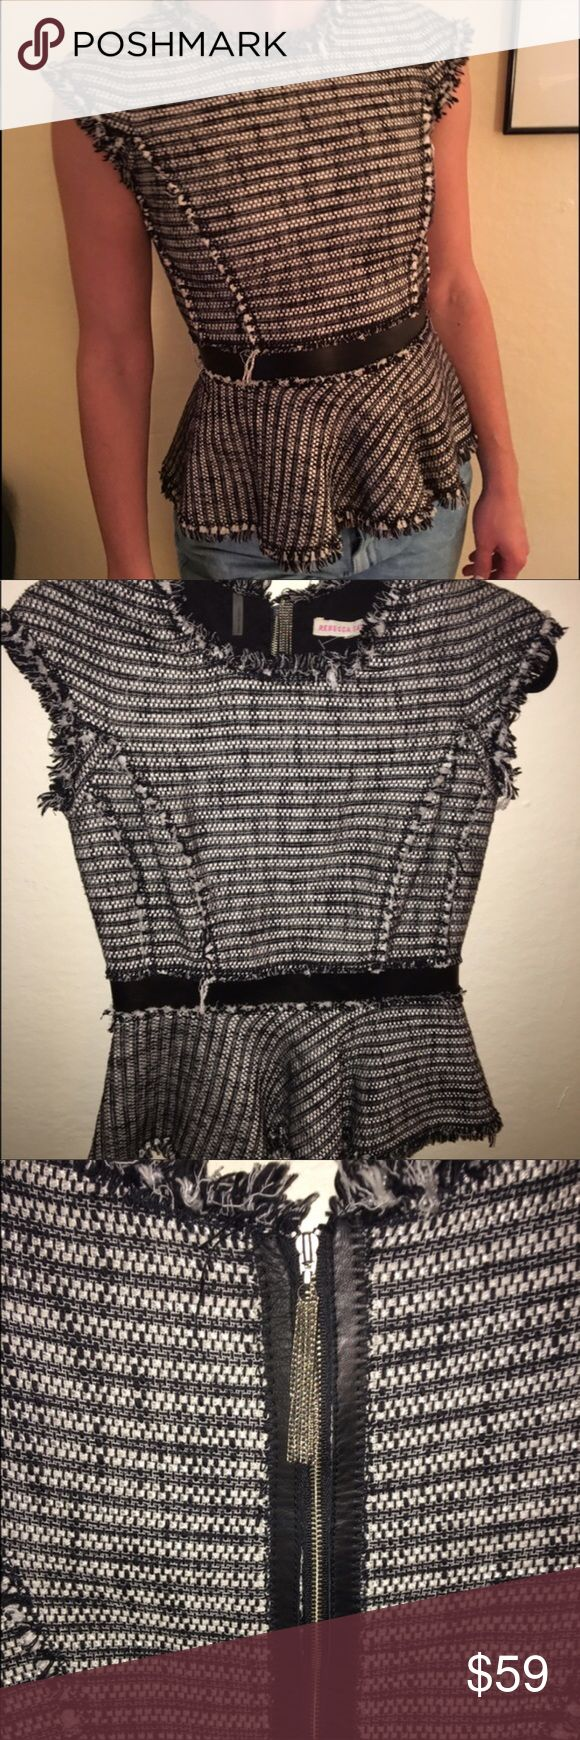 ✨SALE✨Rebecca Taylor Structured Peplum Top 2✨ Well made Rebecca Taylor peplum top. Leather Trim, herringbone material throughout. Very cute top and very professional  Buy 2+ items and get a 15% bundle discount Rebecca Taylor Tops Blouses